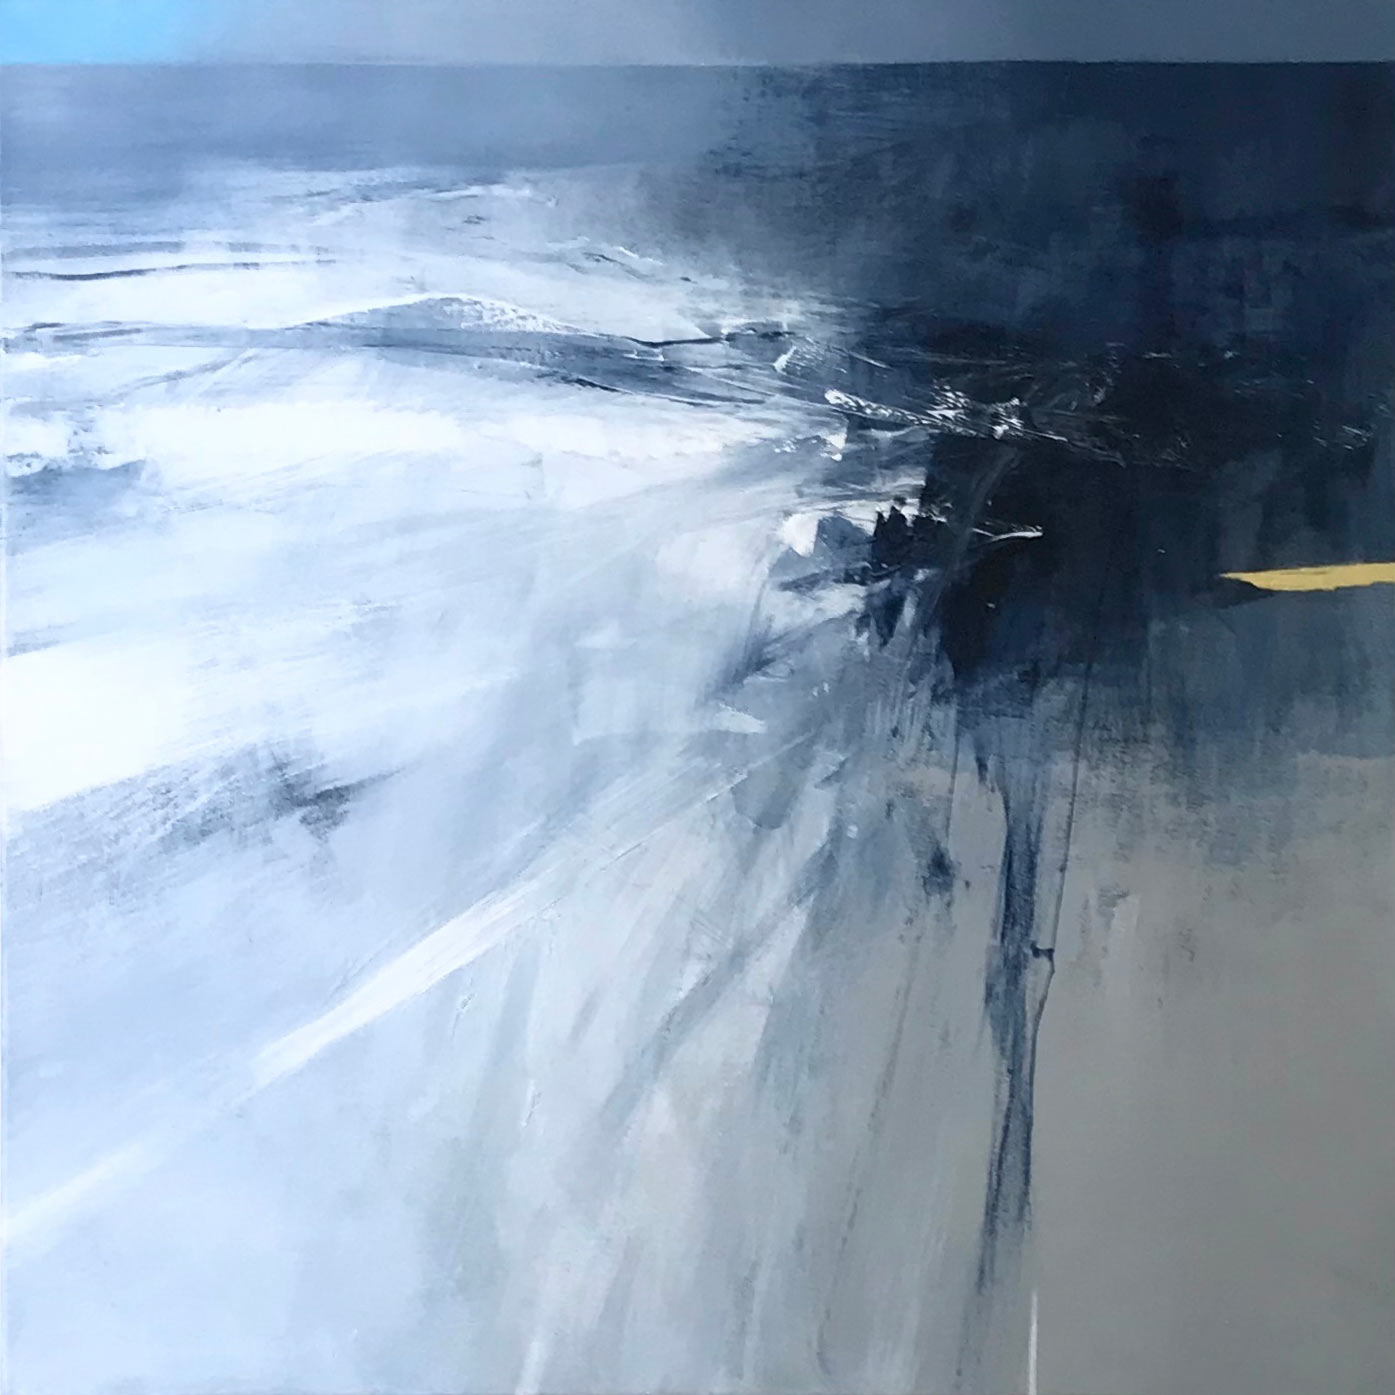 https://neilcanning.com/wp-content/uploads/sites/3/2021/08/West-Coast-Surf-by-Neil-Canning-at-Martin-Tinney-Gallery-Cardiff.jpg